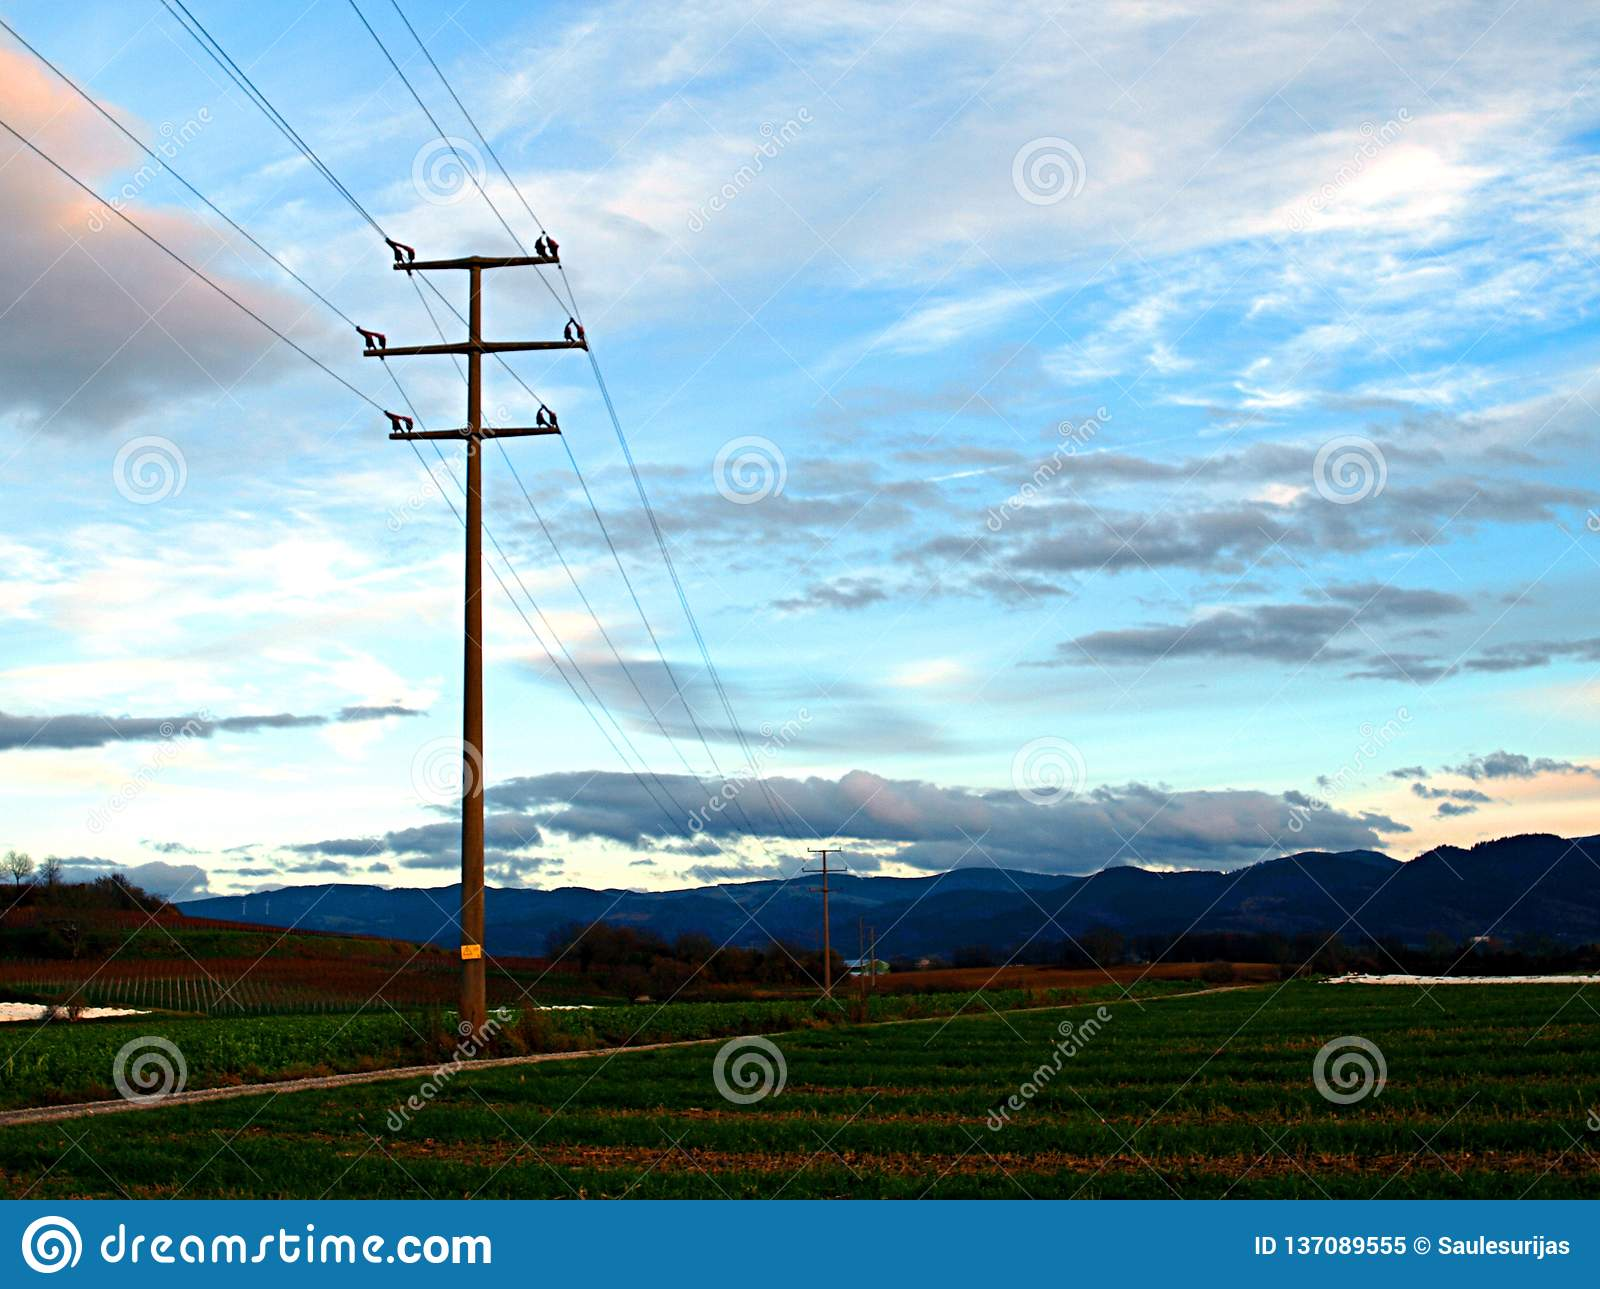 Support of power lines in the evening